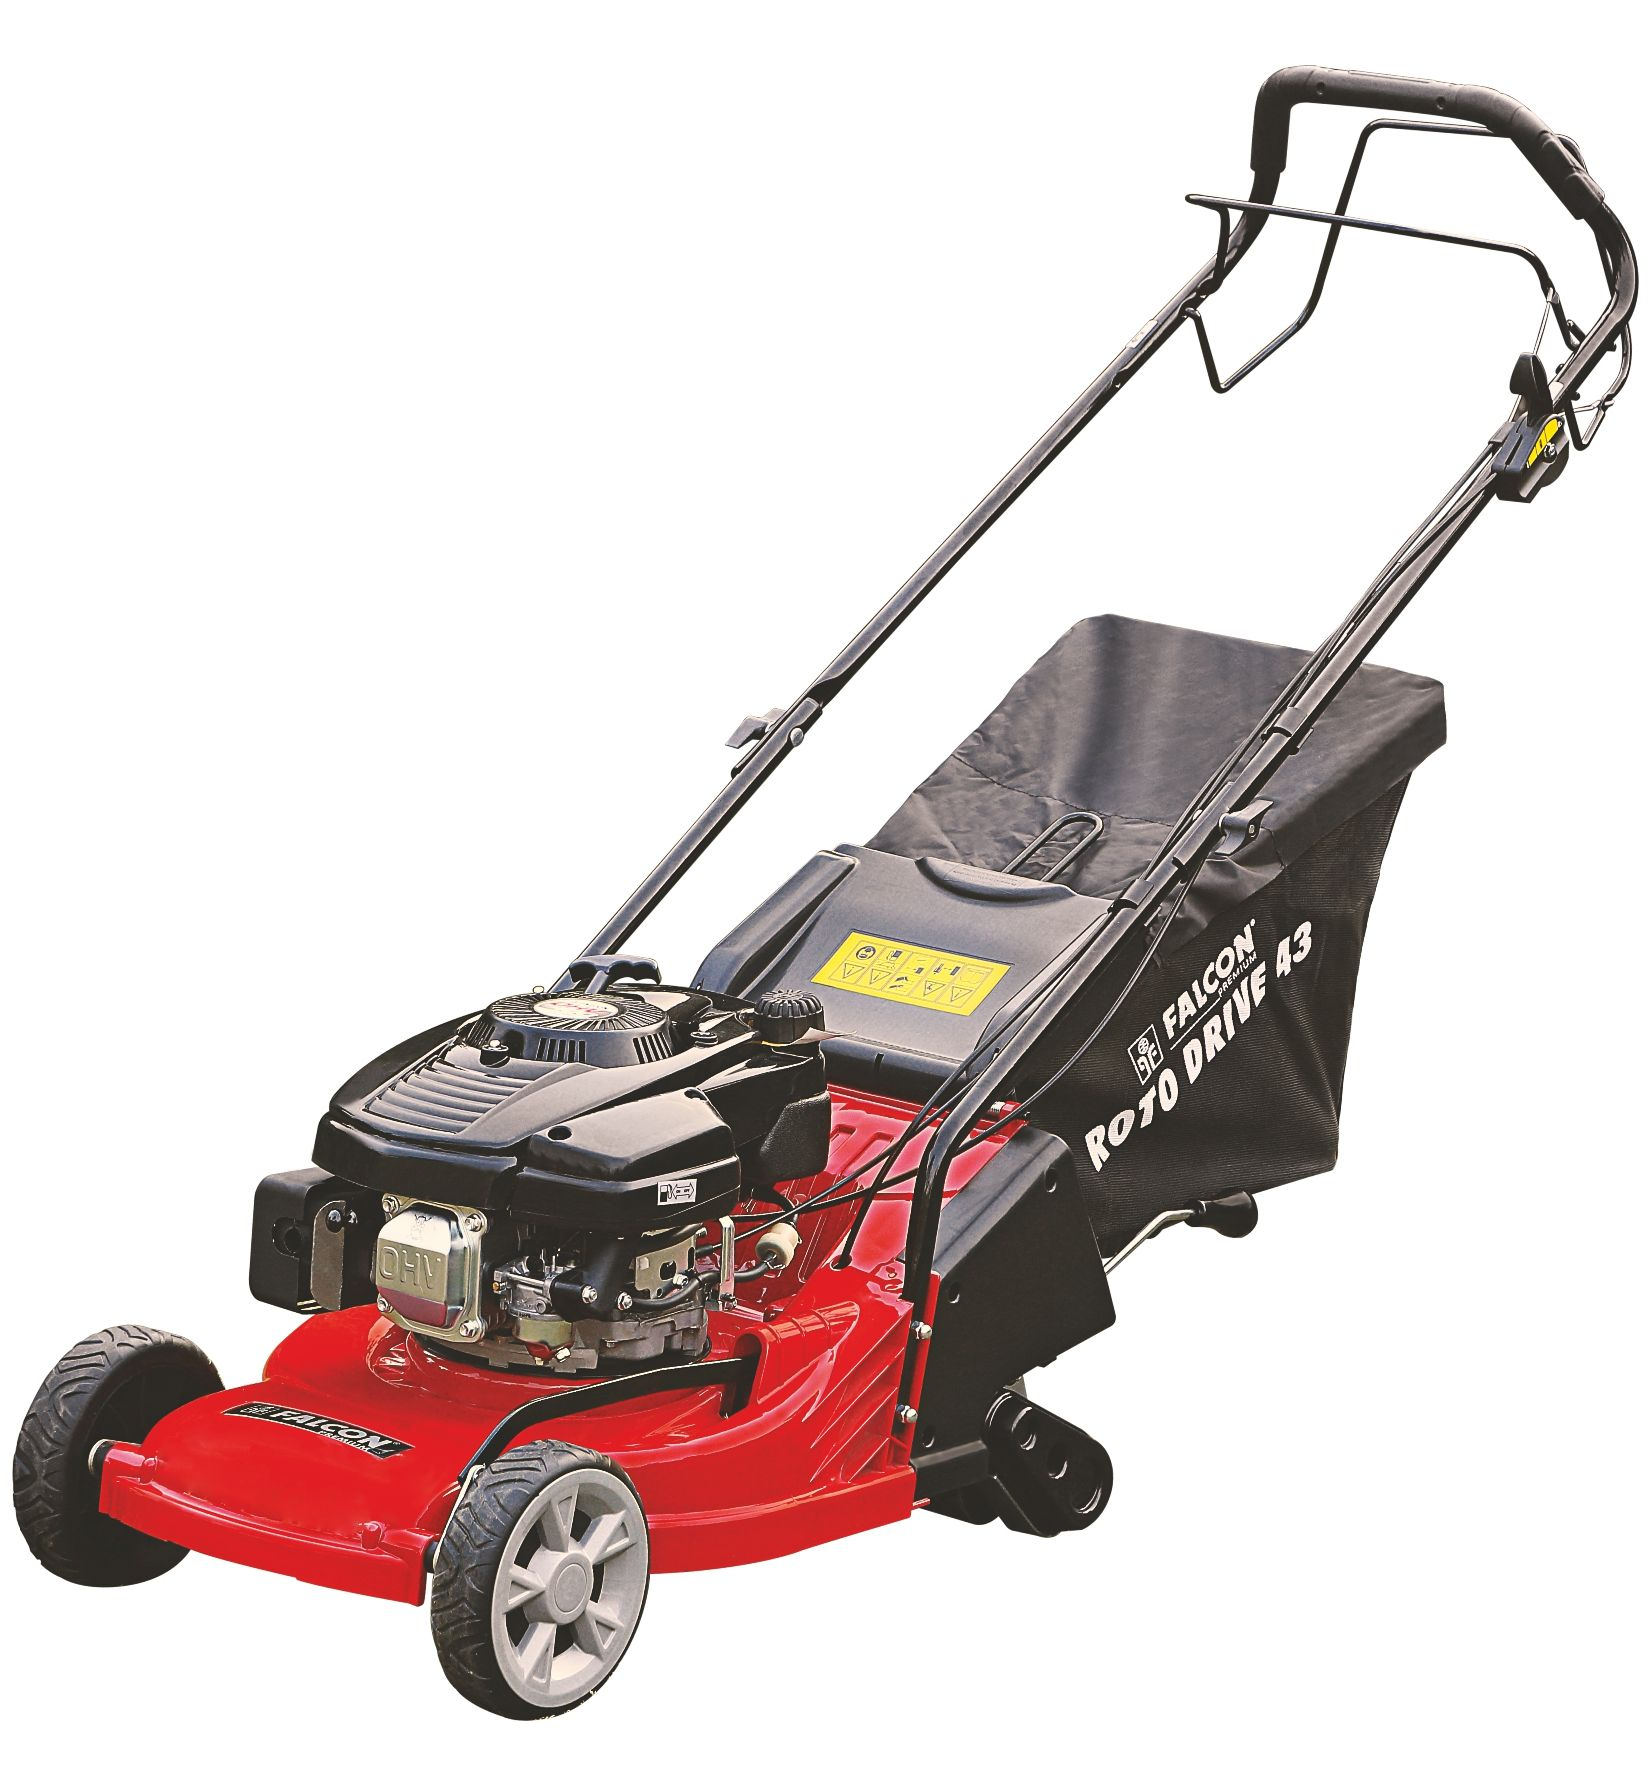 FALCON ROTARY LAWN MOWER Roto Drive 43 Engine 4hp Cut Width 17